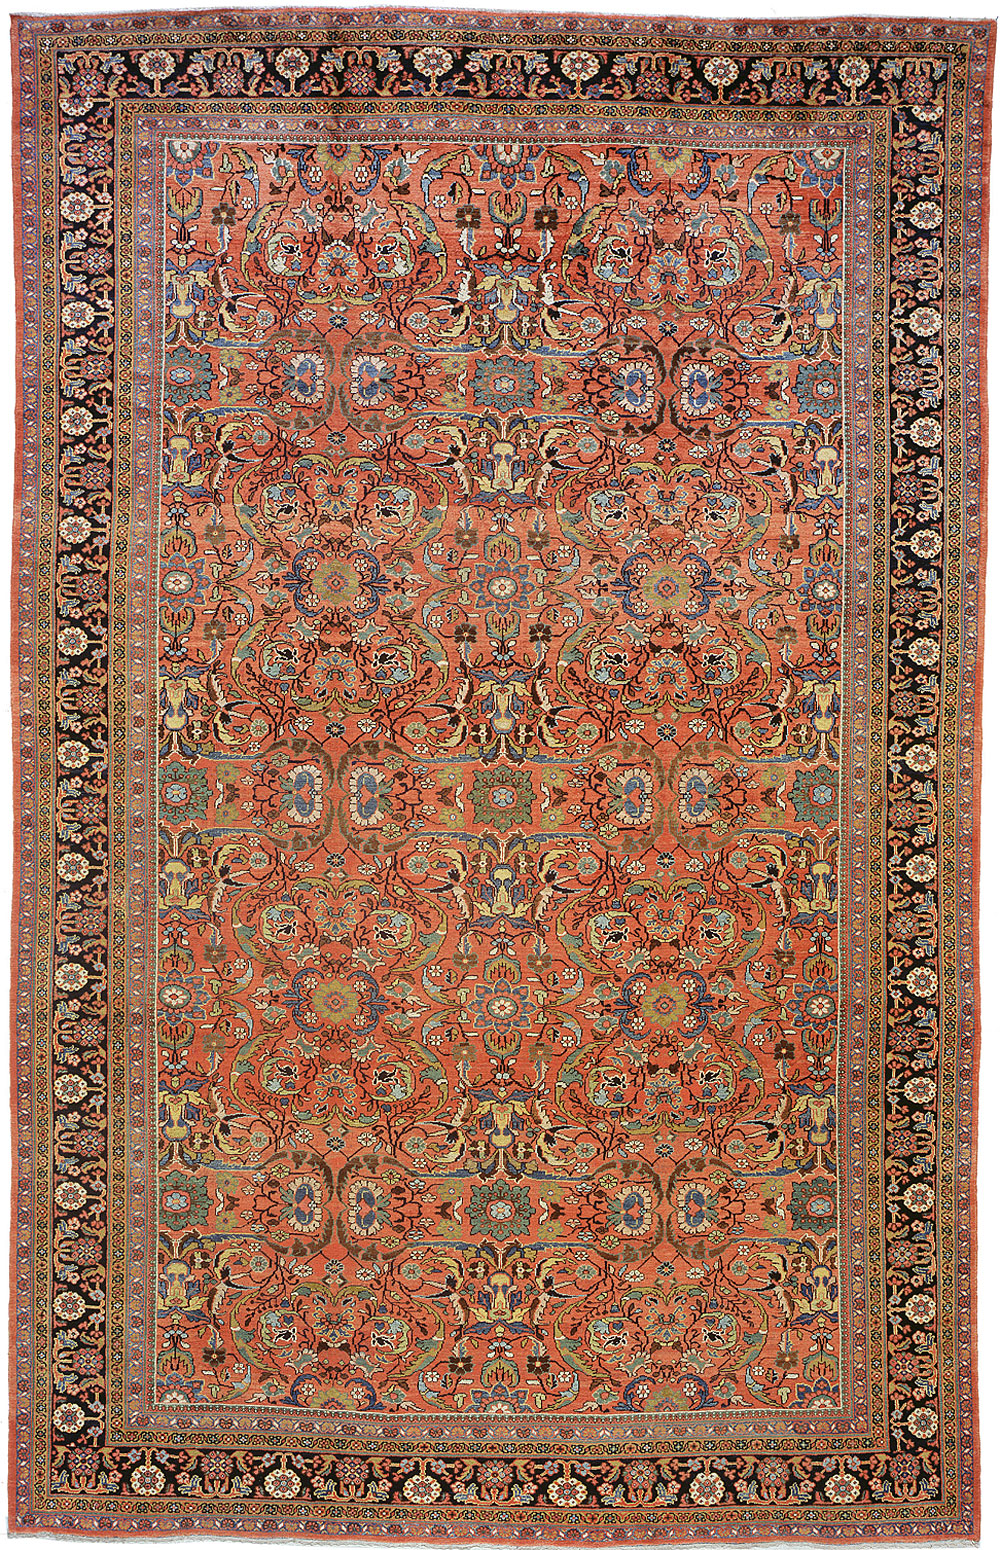 Mahal Carpet_16859